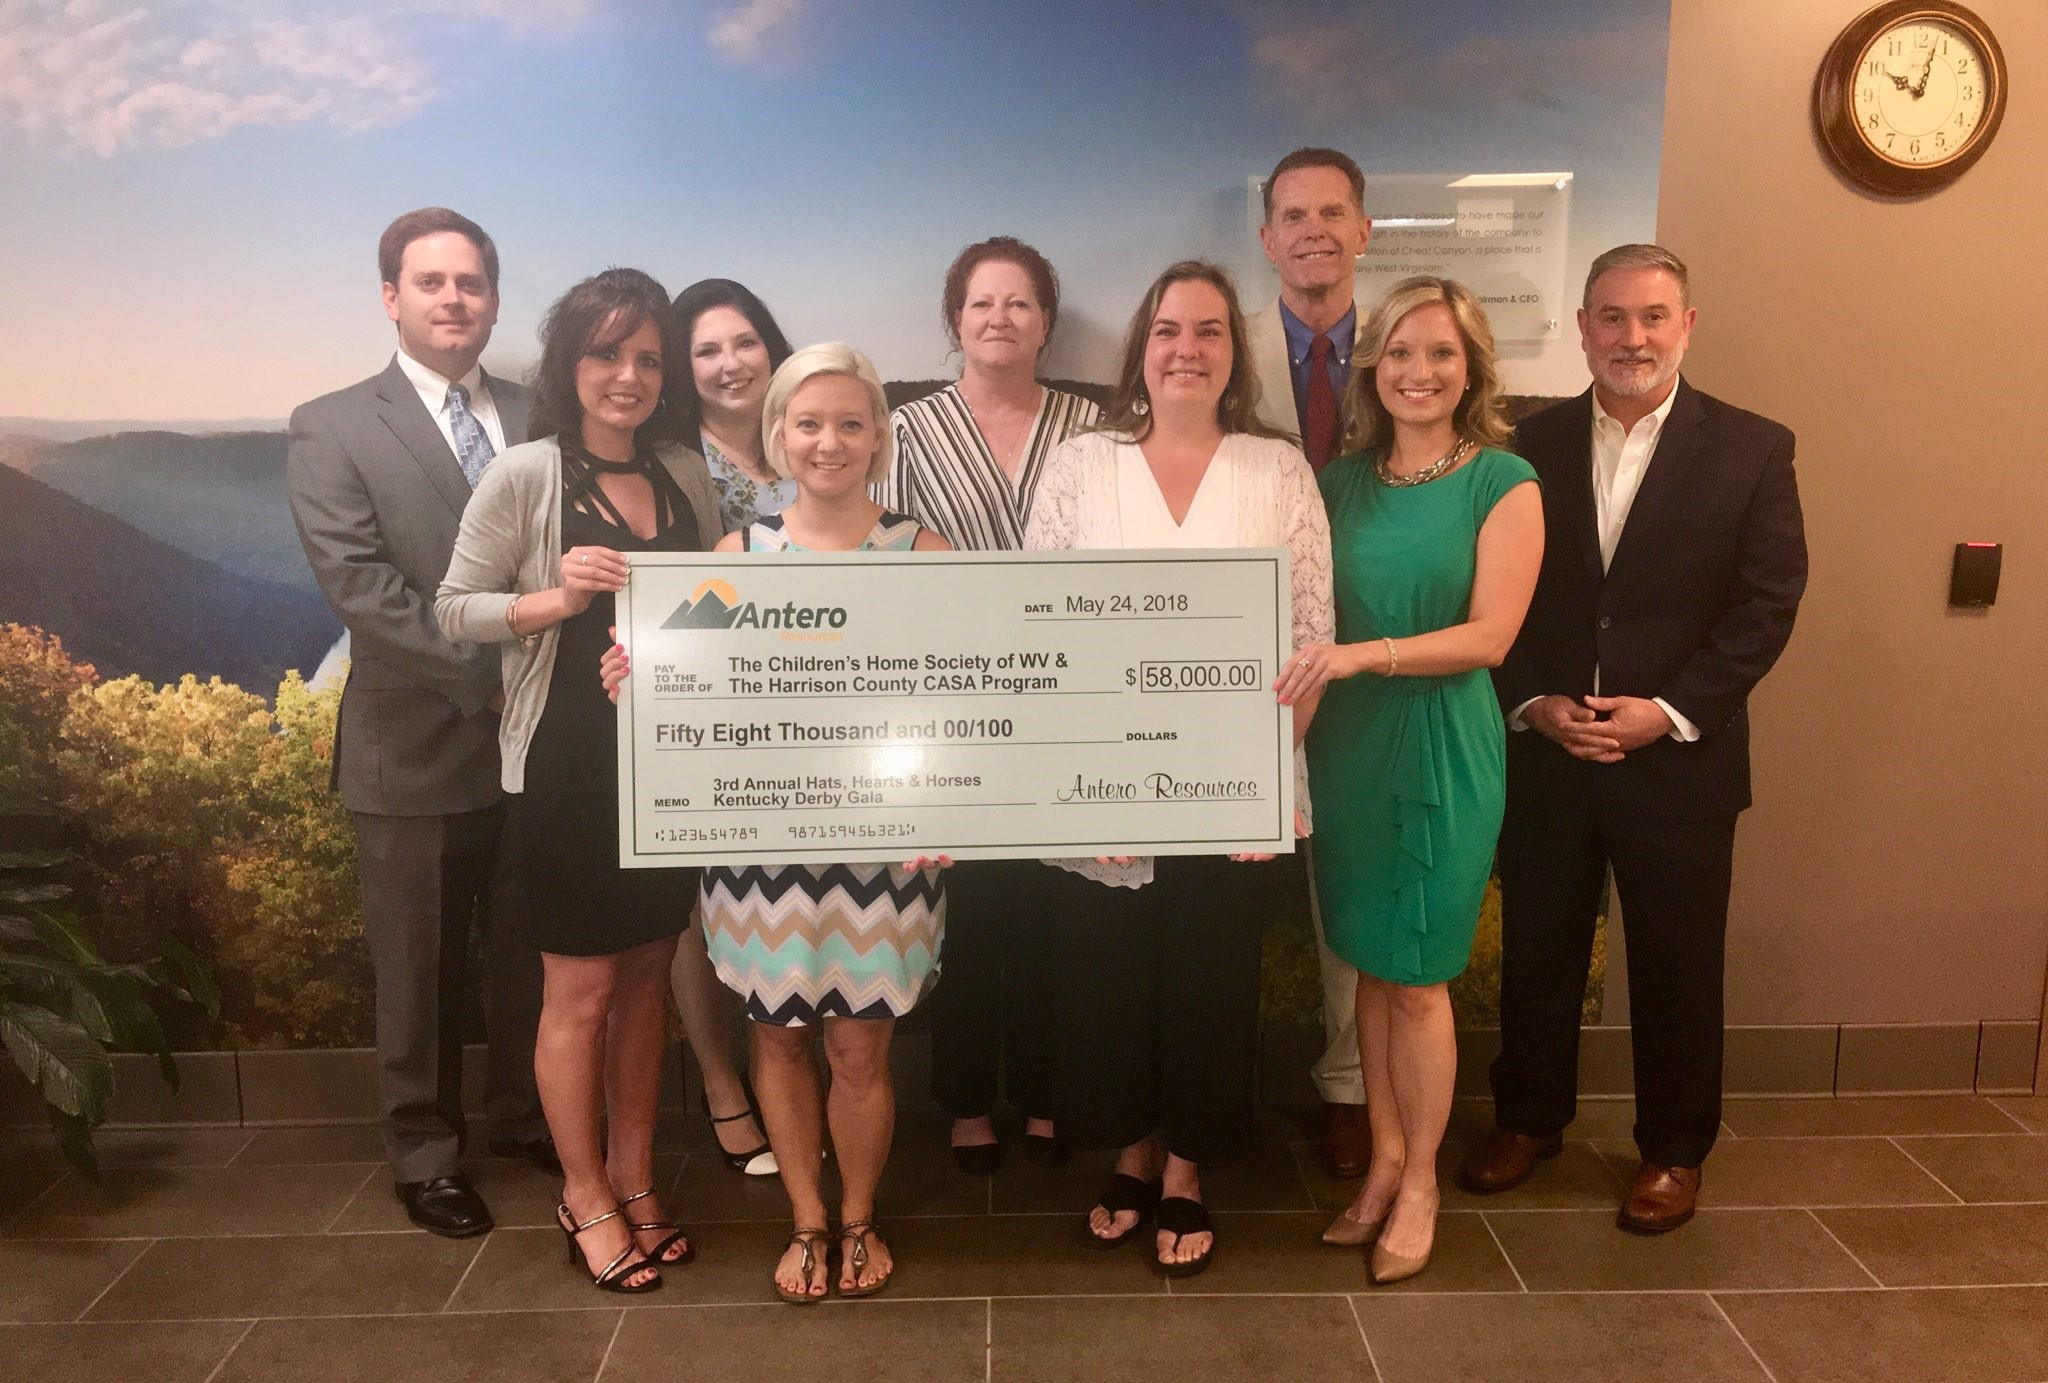 2018 Derby Check Presentation